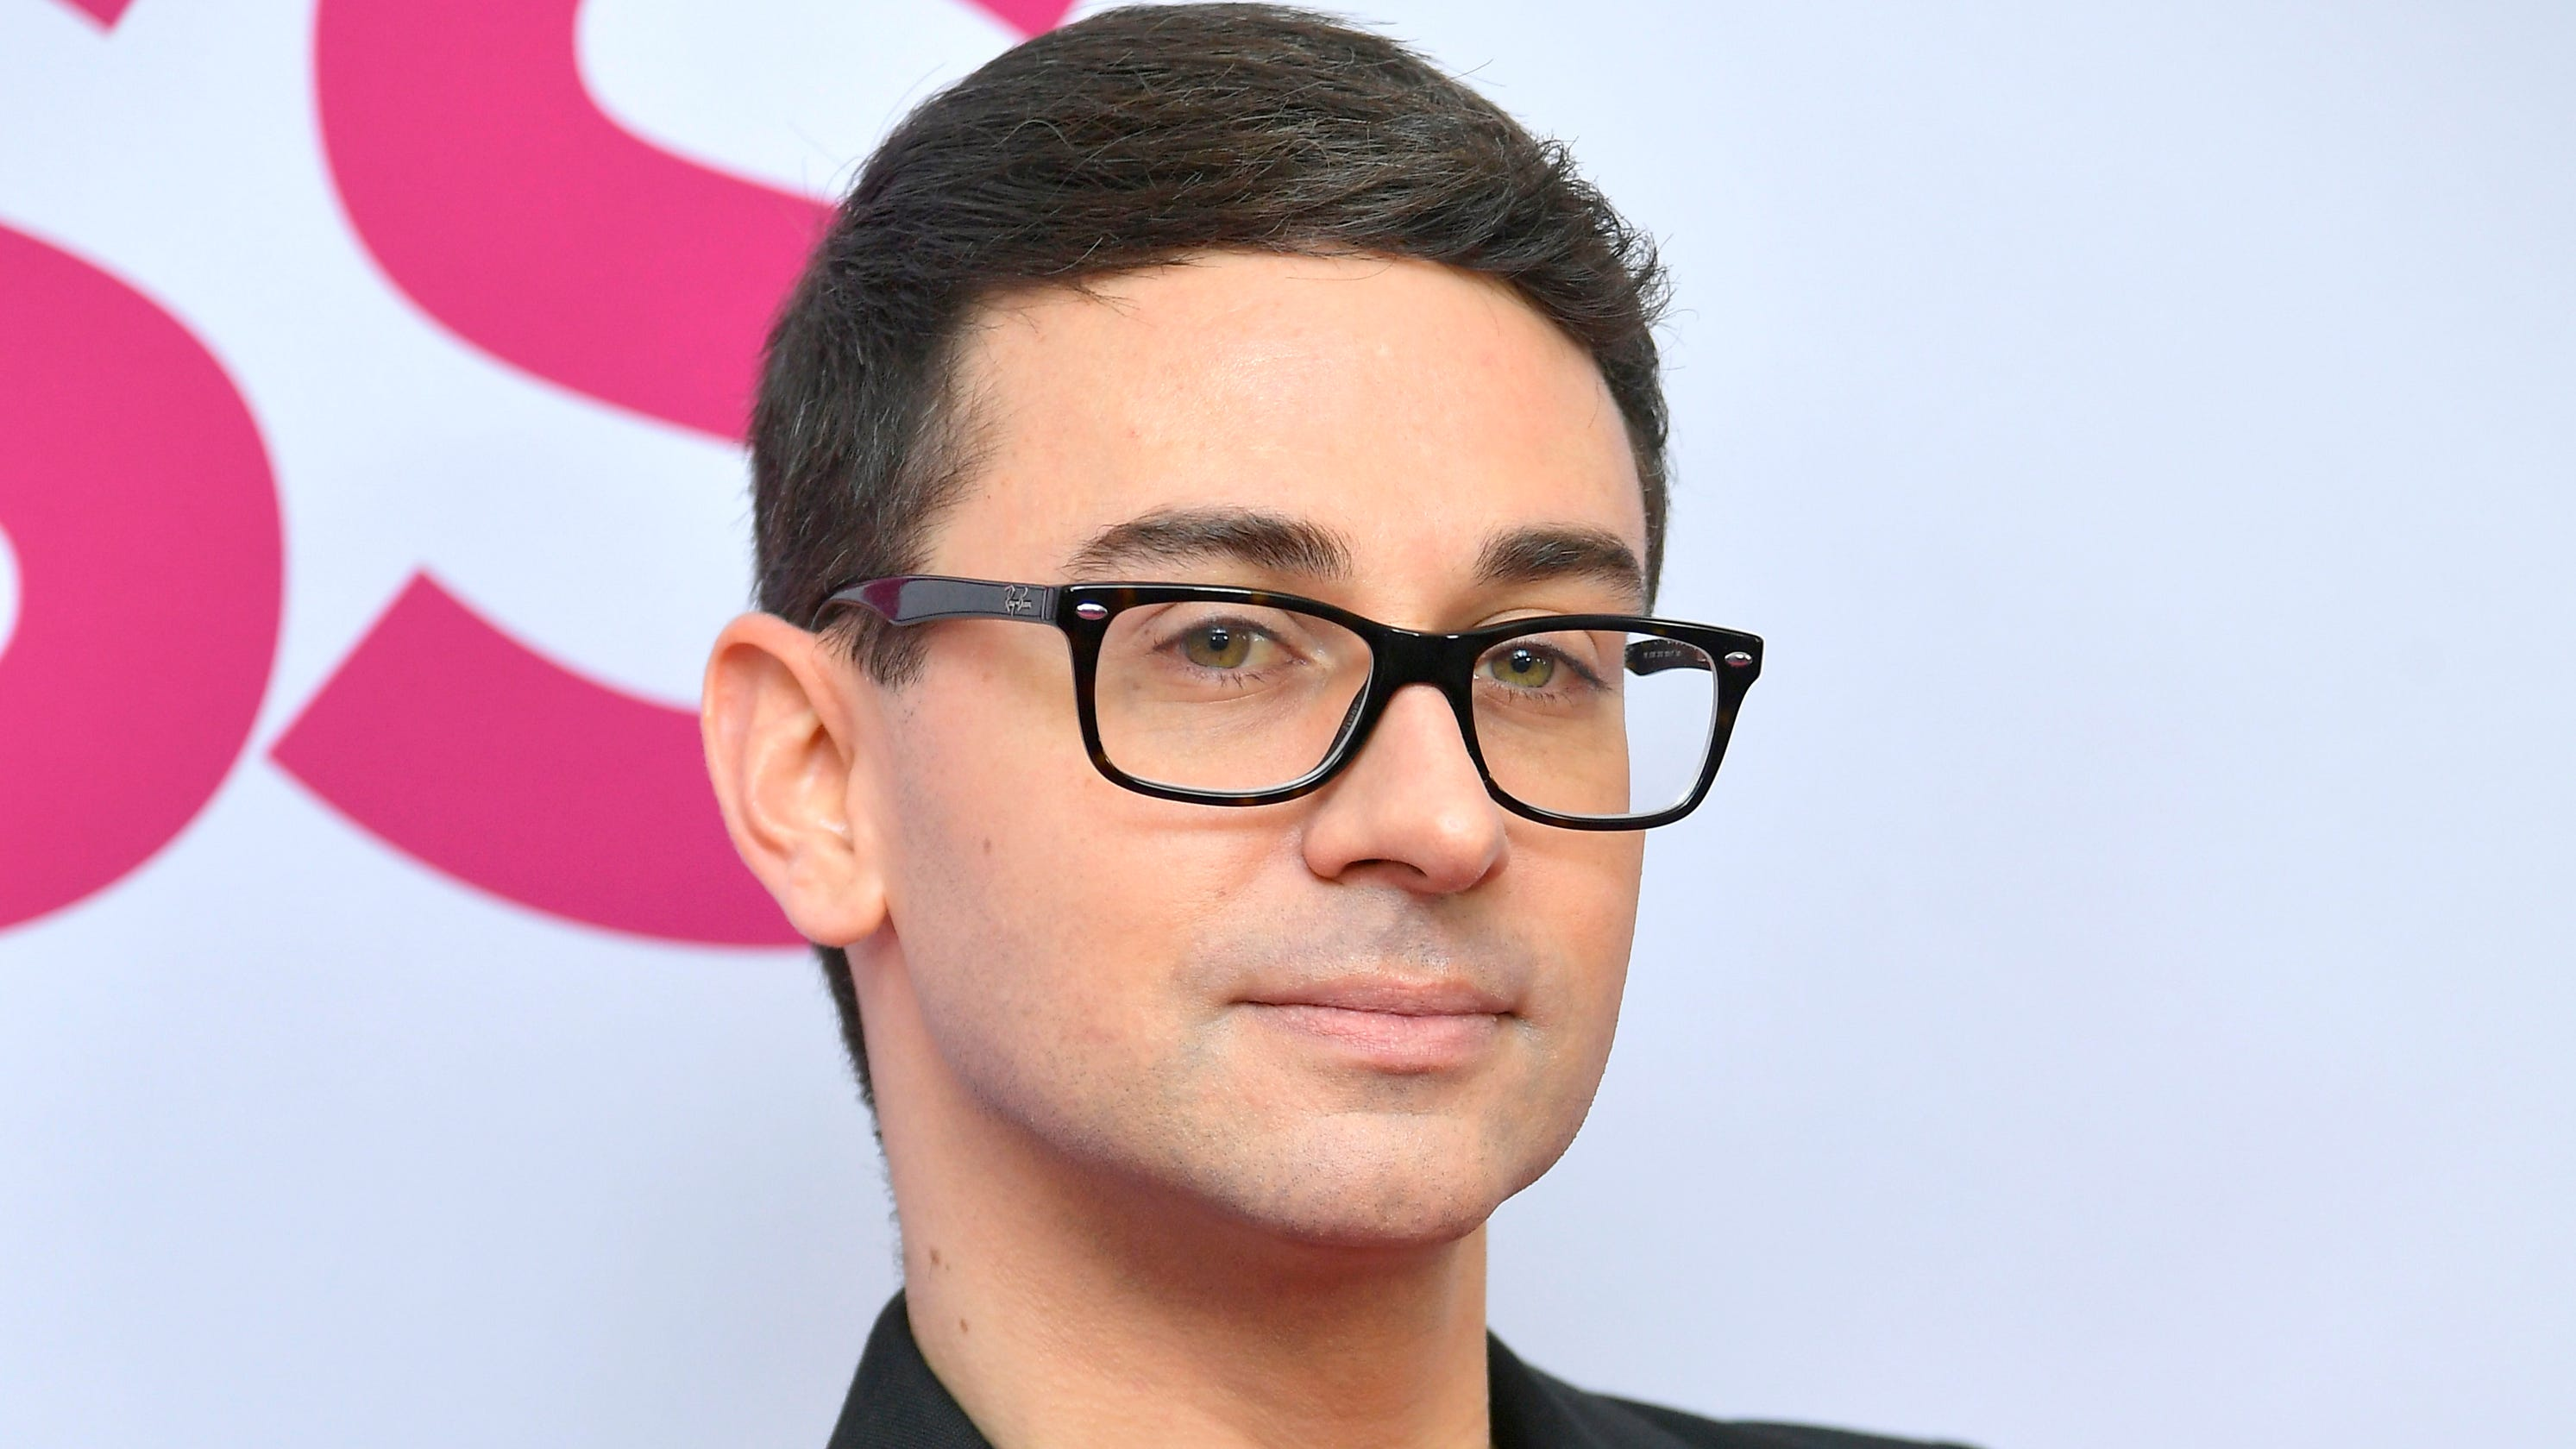 Christian Siriano is making masks for hospital workers, plus more stars helping out